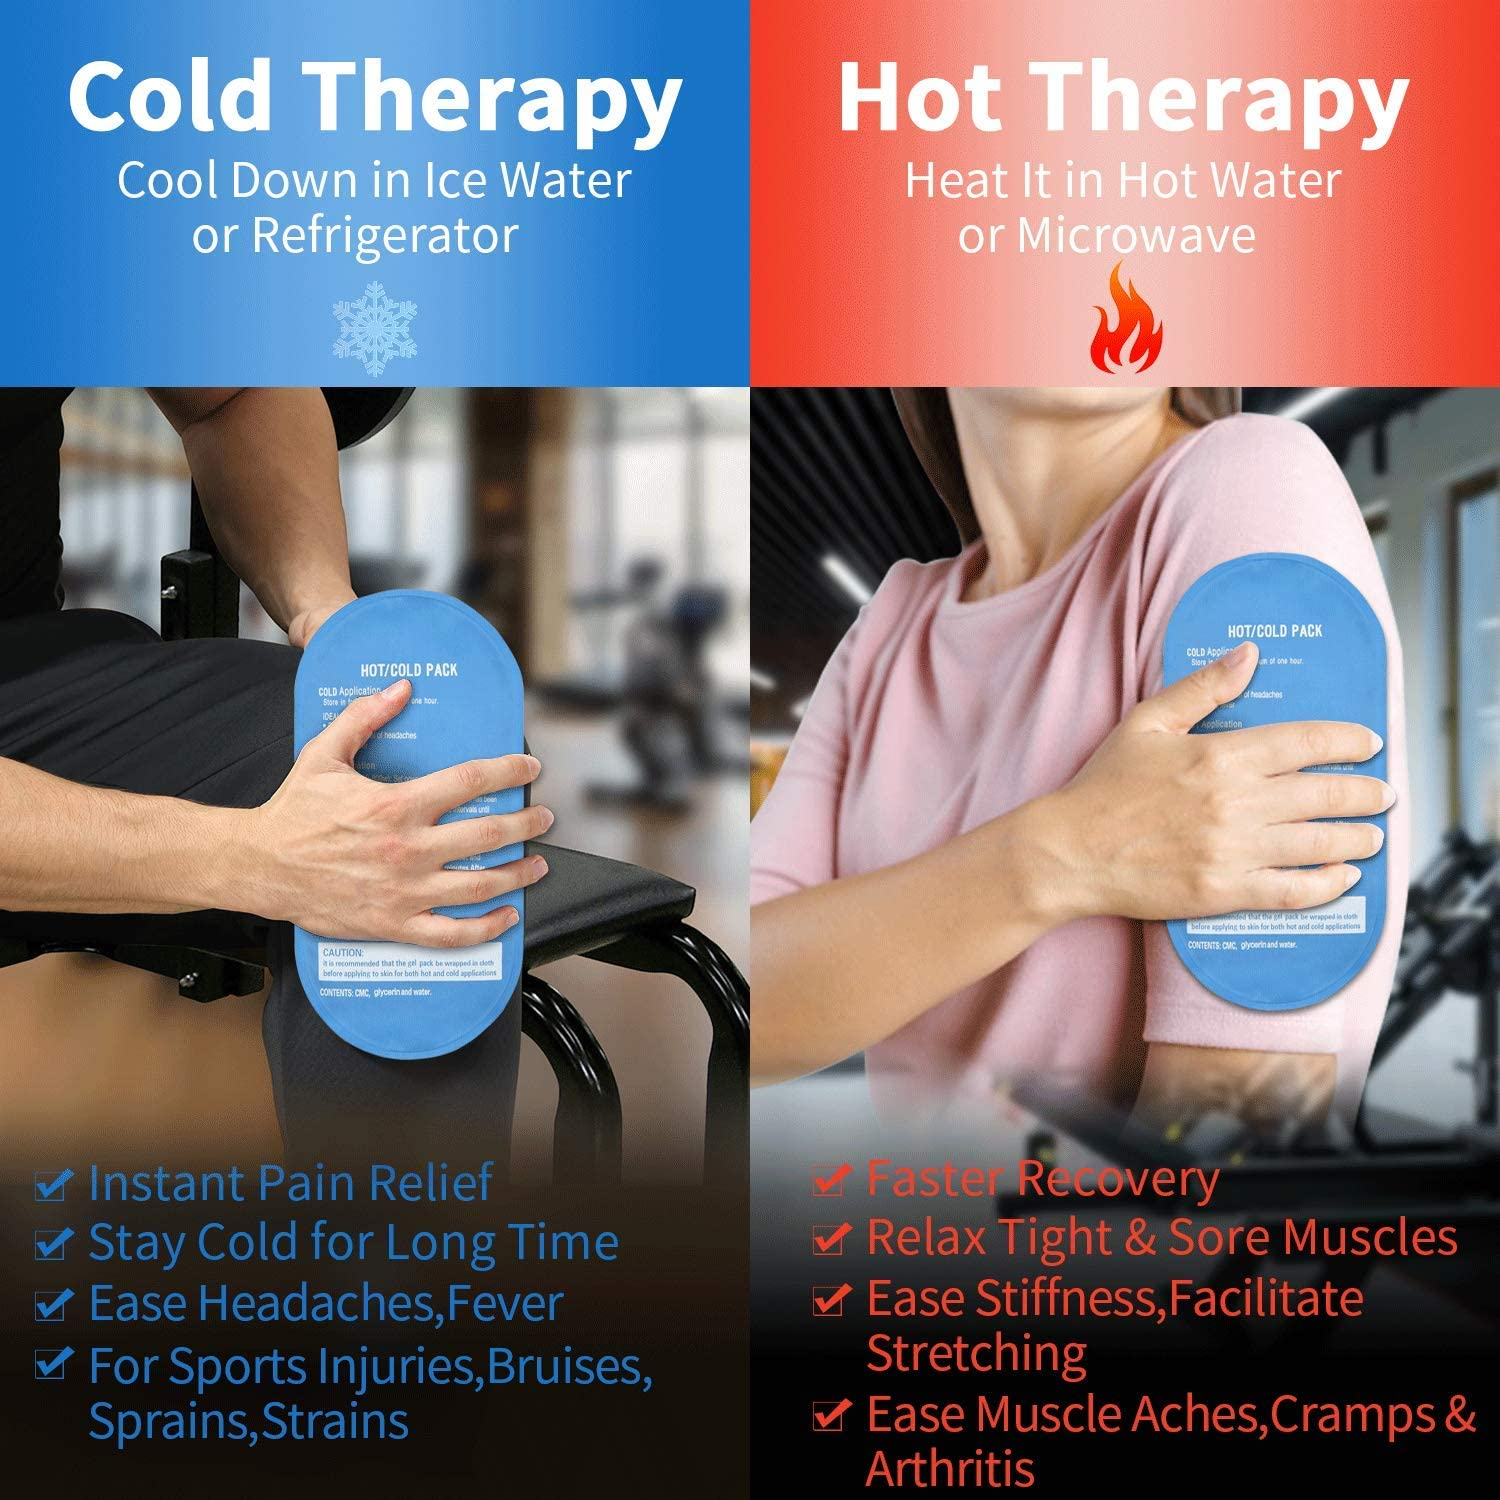 Gel Ice Pack, 2-Pack Reusable Cold & Hot Pack, Flexible Comfortable Cold Compress for Injuries Pain Relief Swelling Muscle Soreness Recovery Sprains, Rapid Hot & Cold Therapy Soft Touch Cold Pack: Health & Personal Care